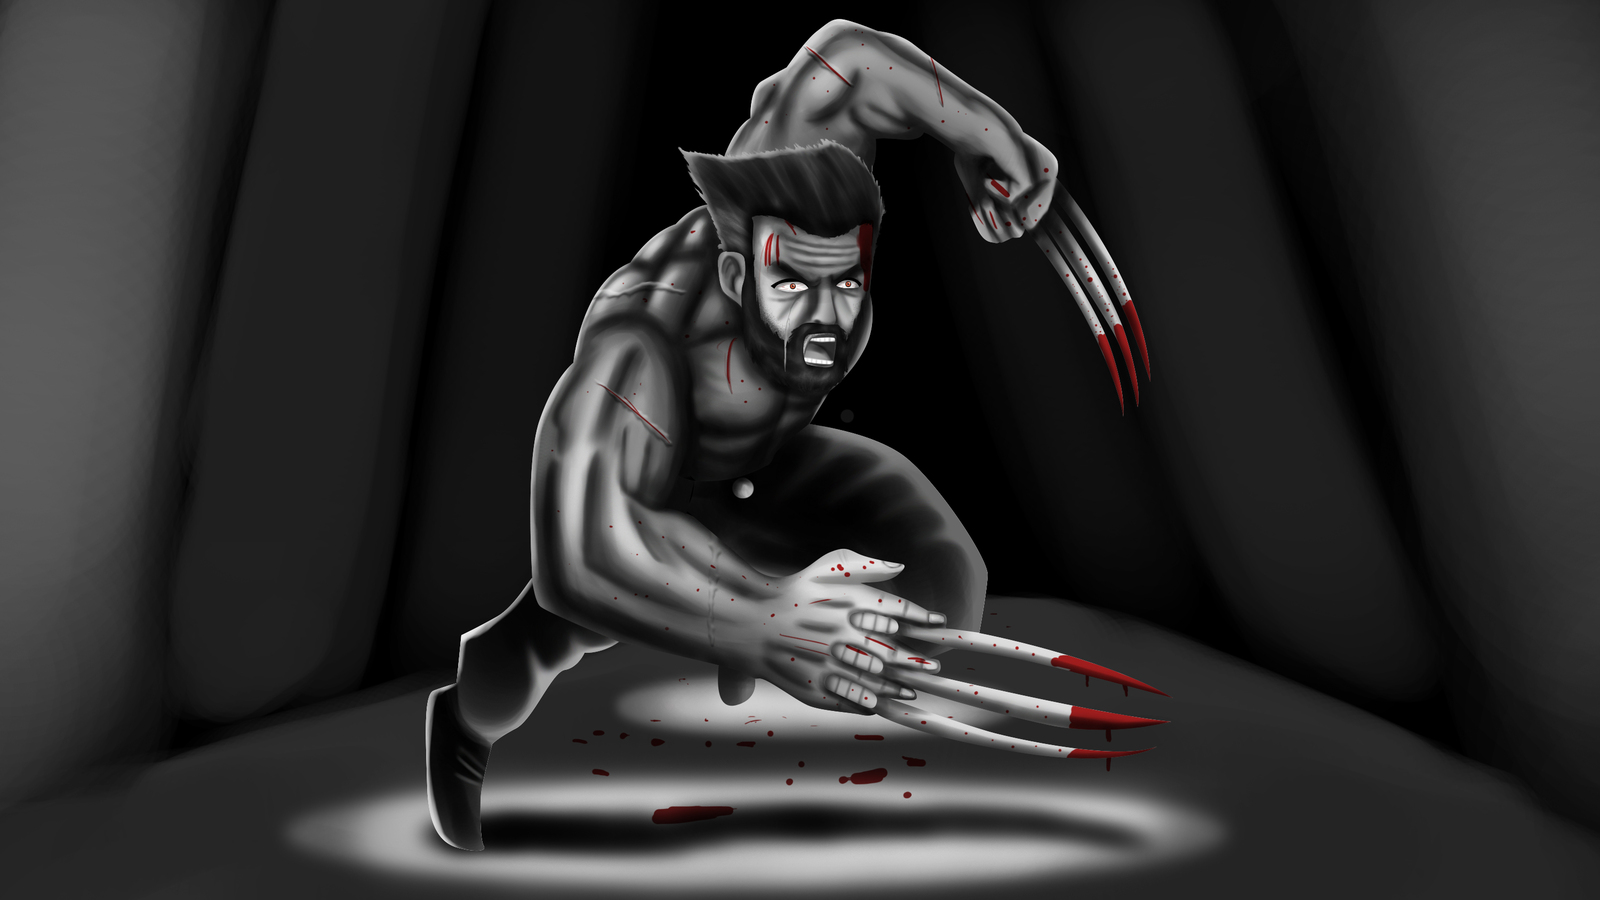 logan-wolverine-black-art-4k-6j.jpg